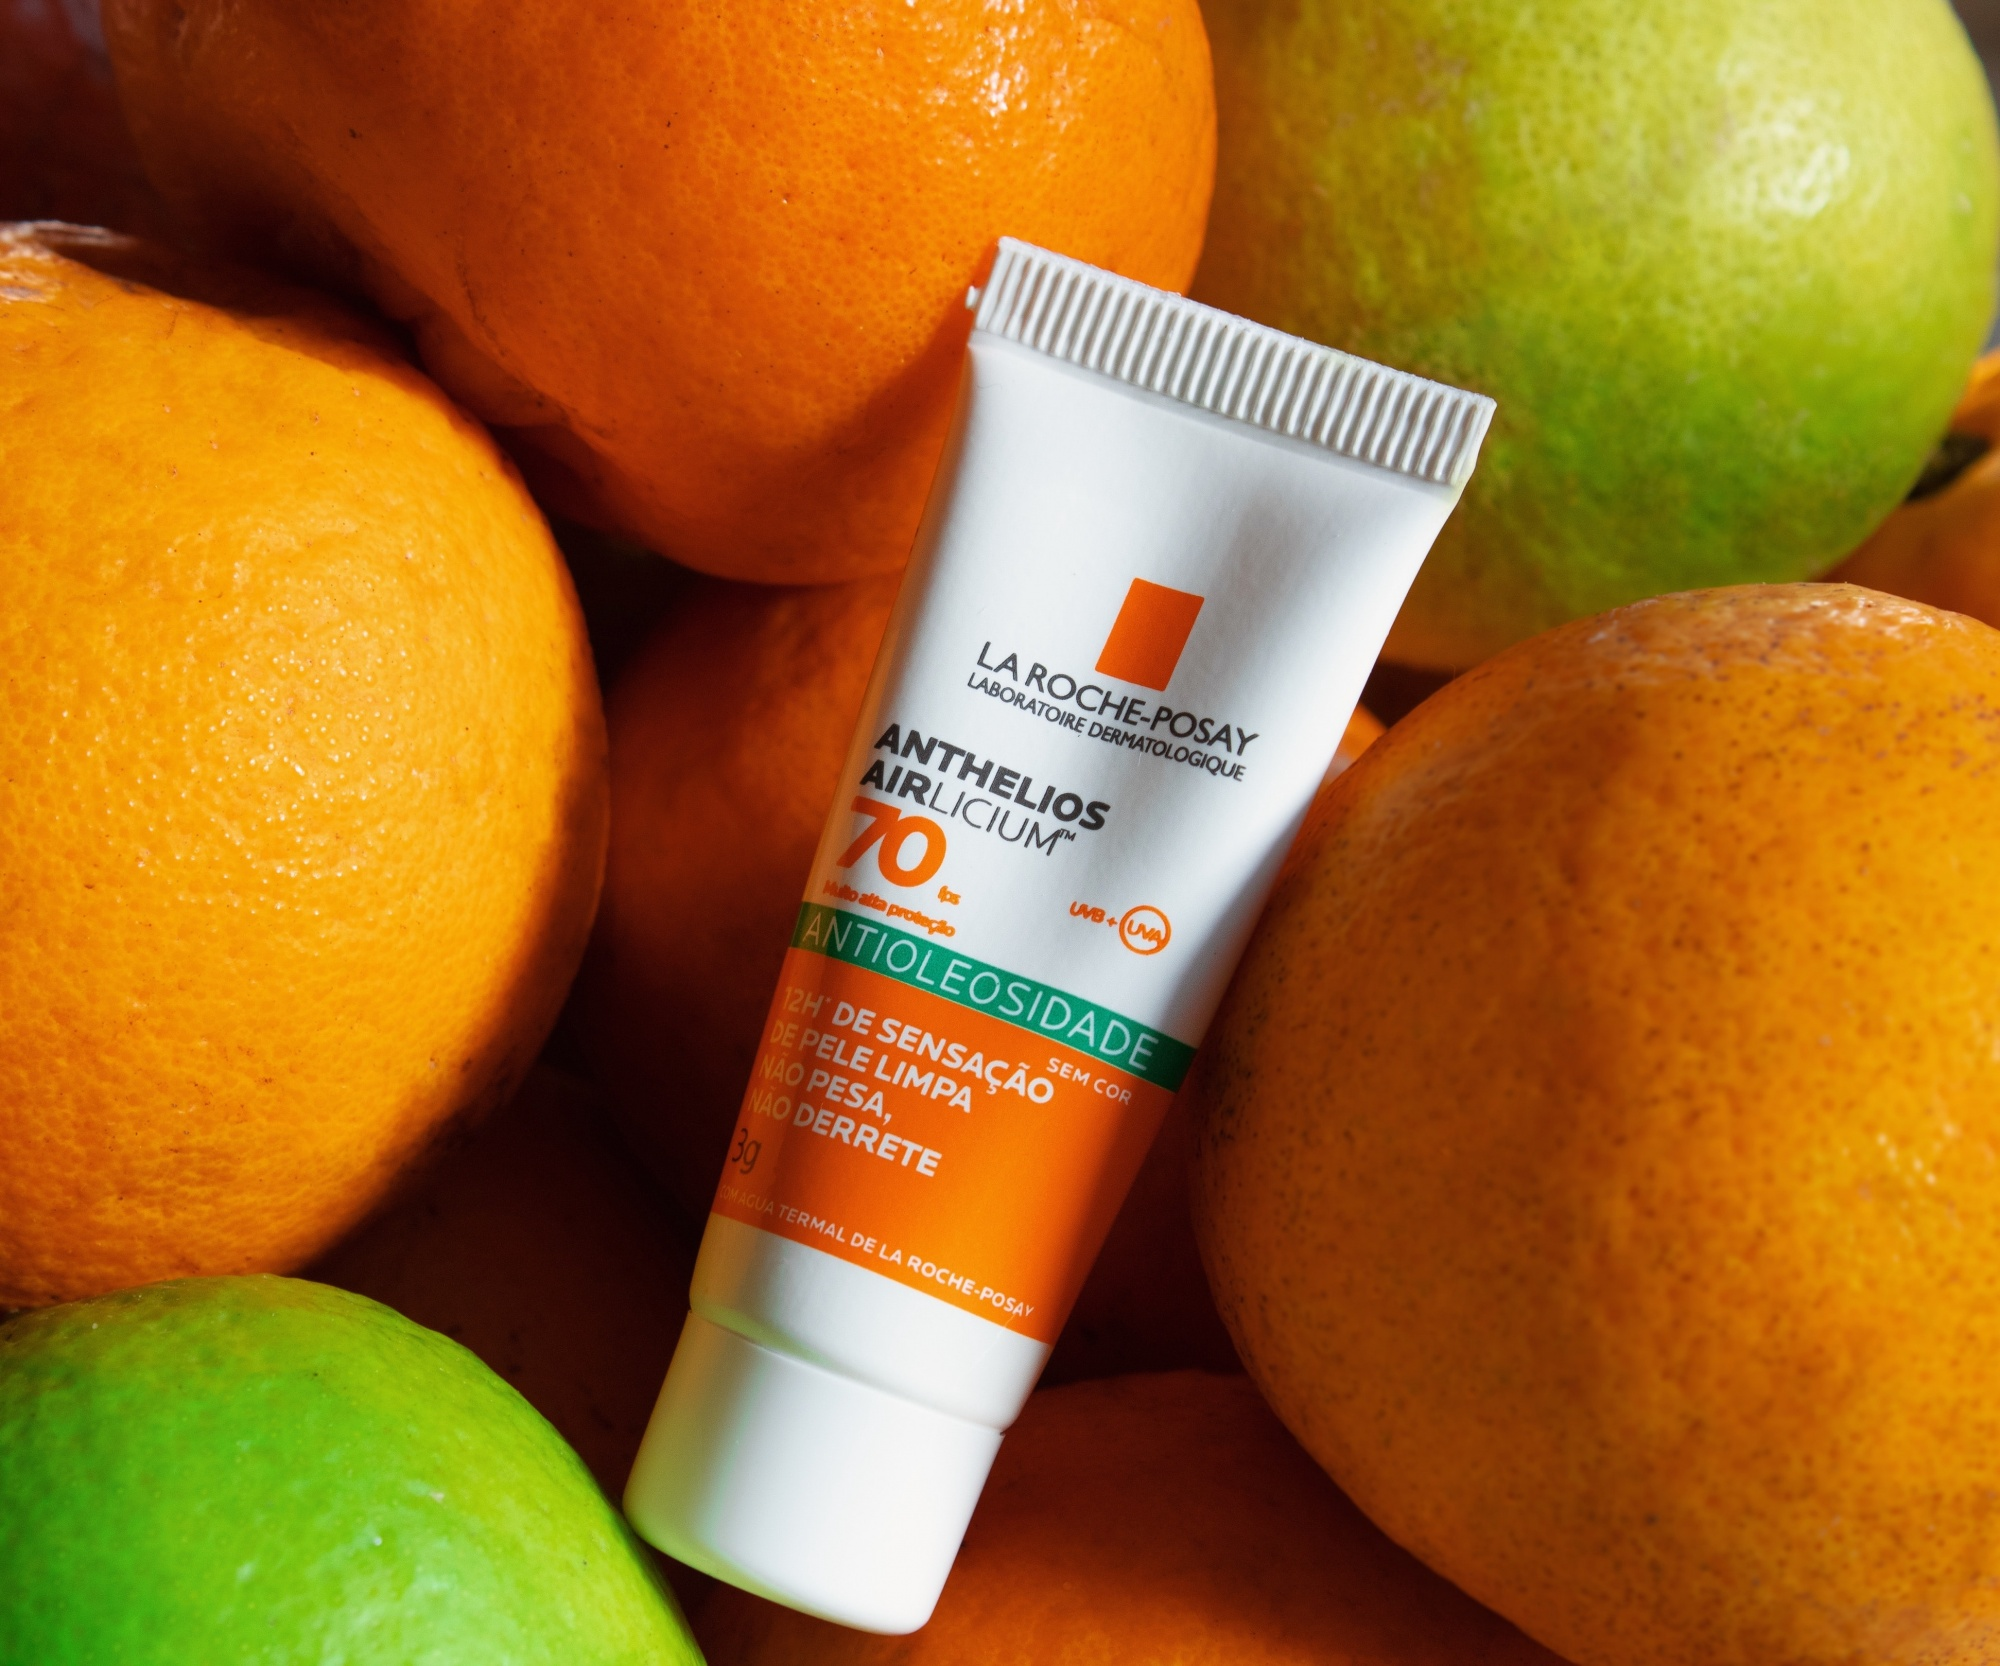 how to reduce hyperpigmentation, hyperpigmentation solutions sunscreen tube in orange and white by La Roche-Posay